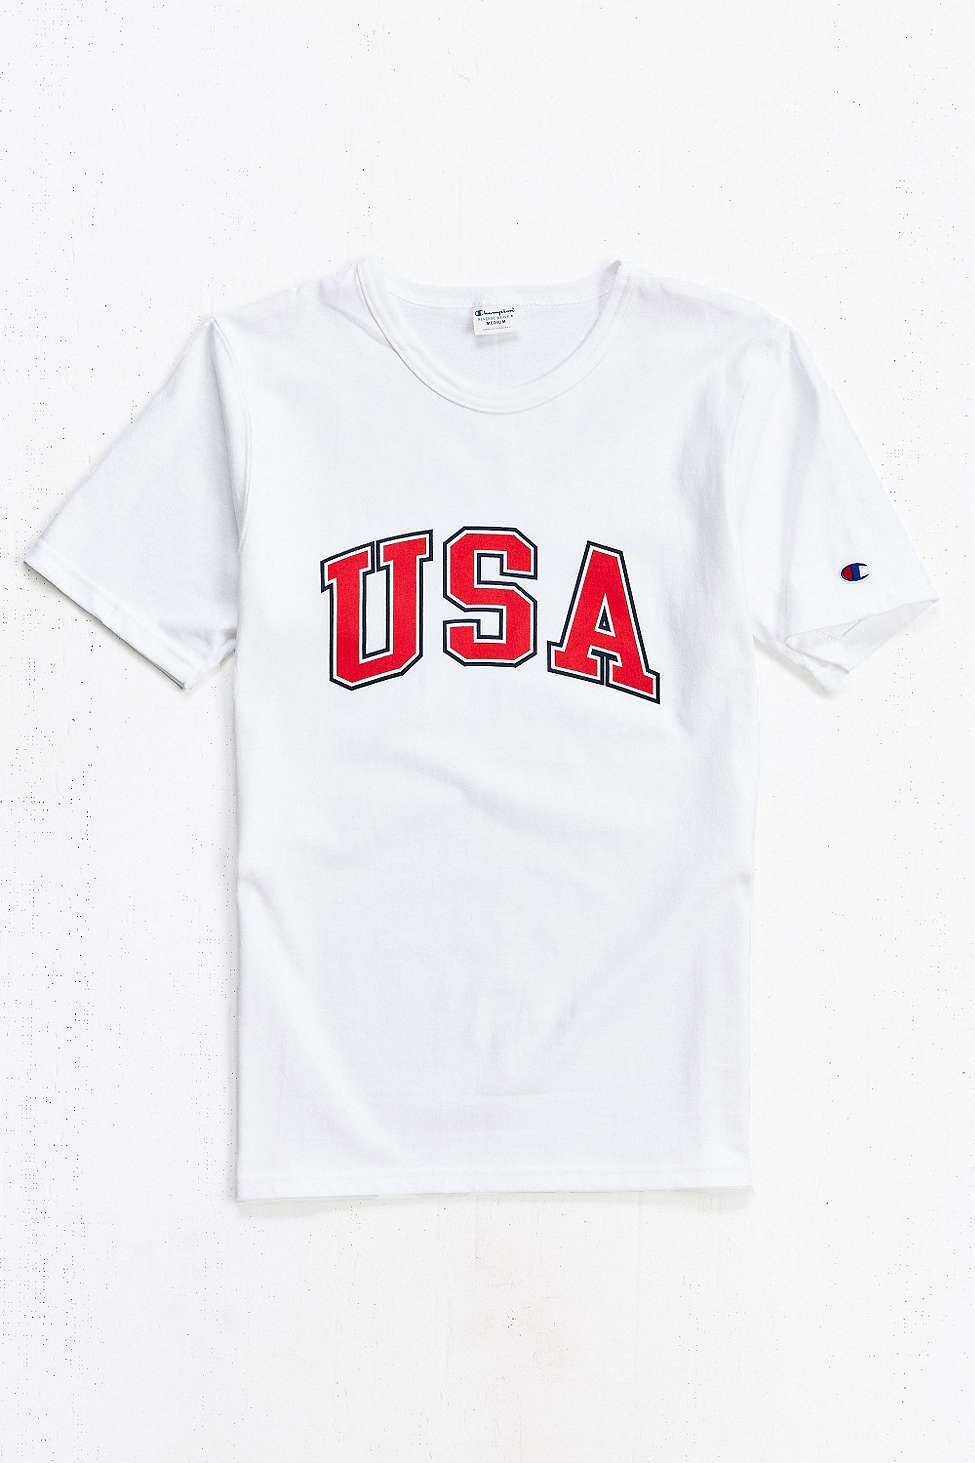 8e78a83bd133 Lyst - Champion Reverse Weave Usa Heritage Tee in White for Men